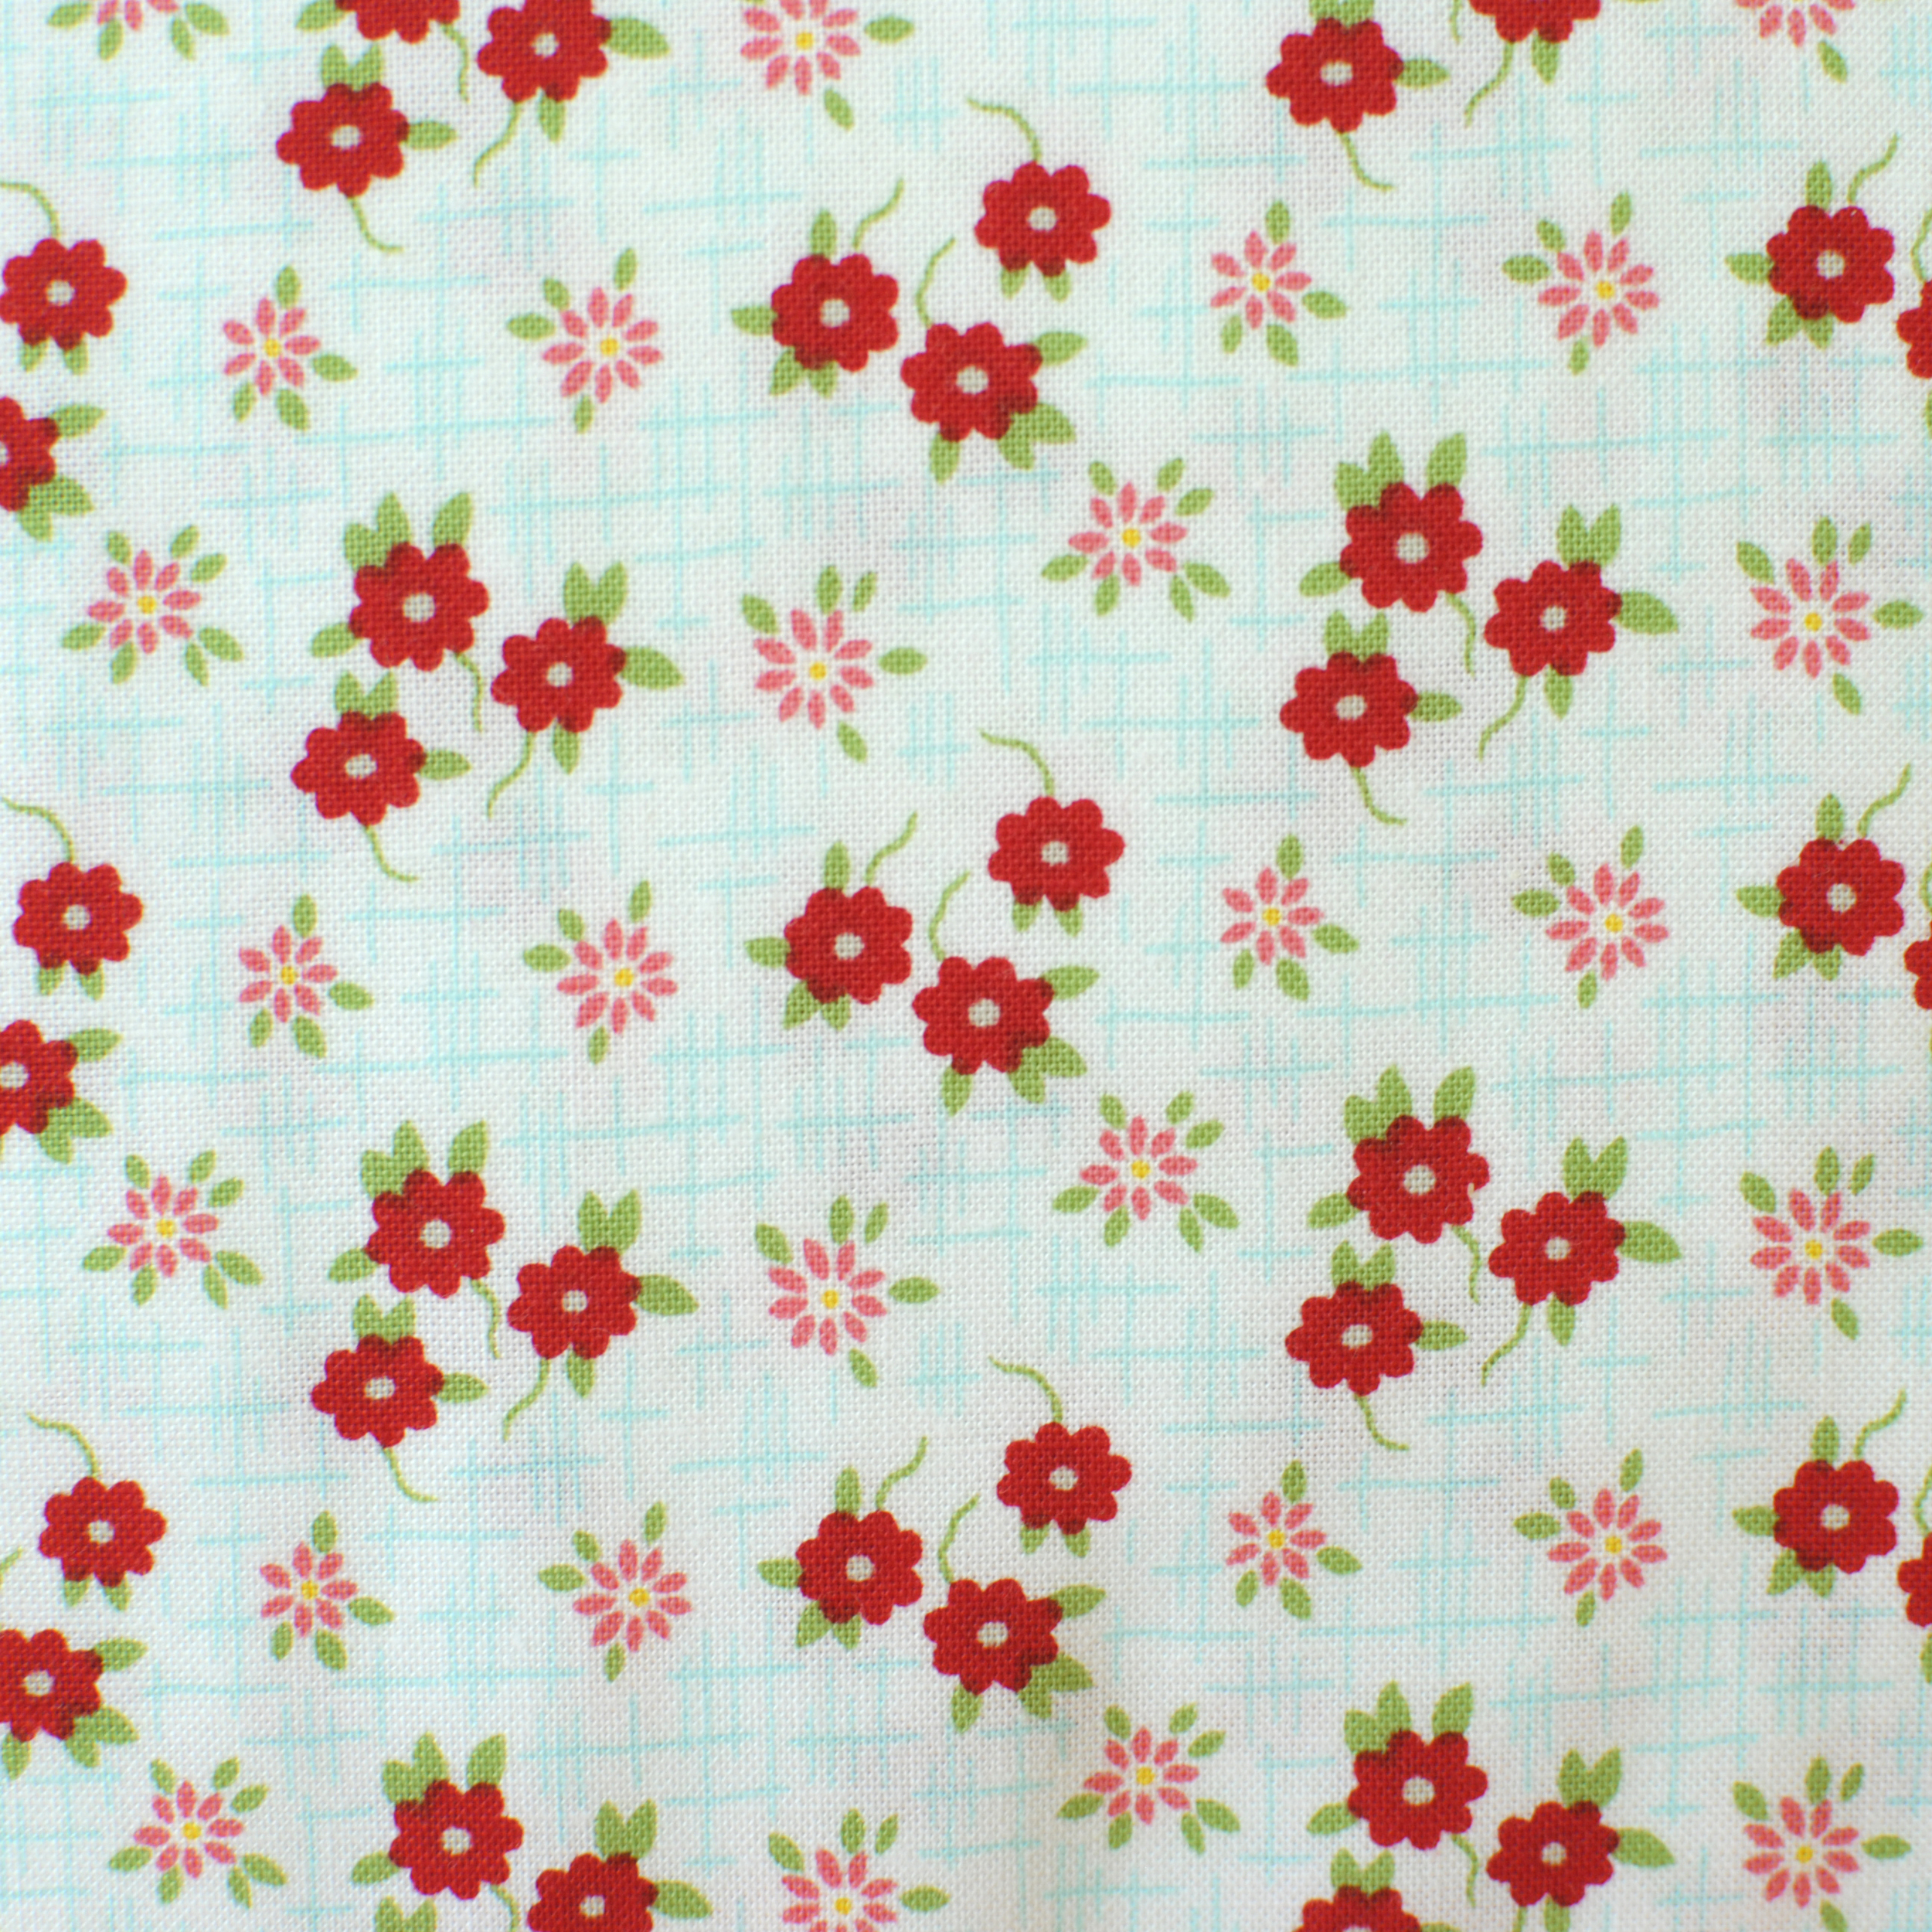 Small Red Flowers MO-12A